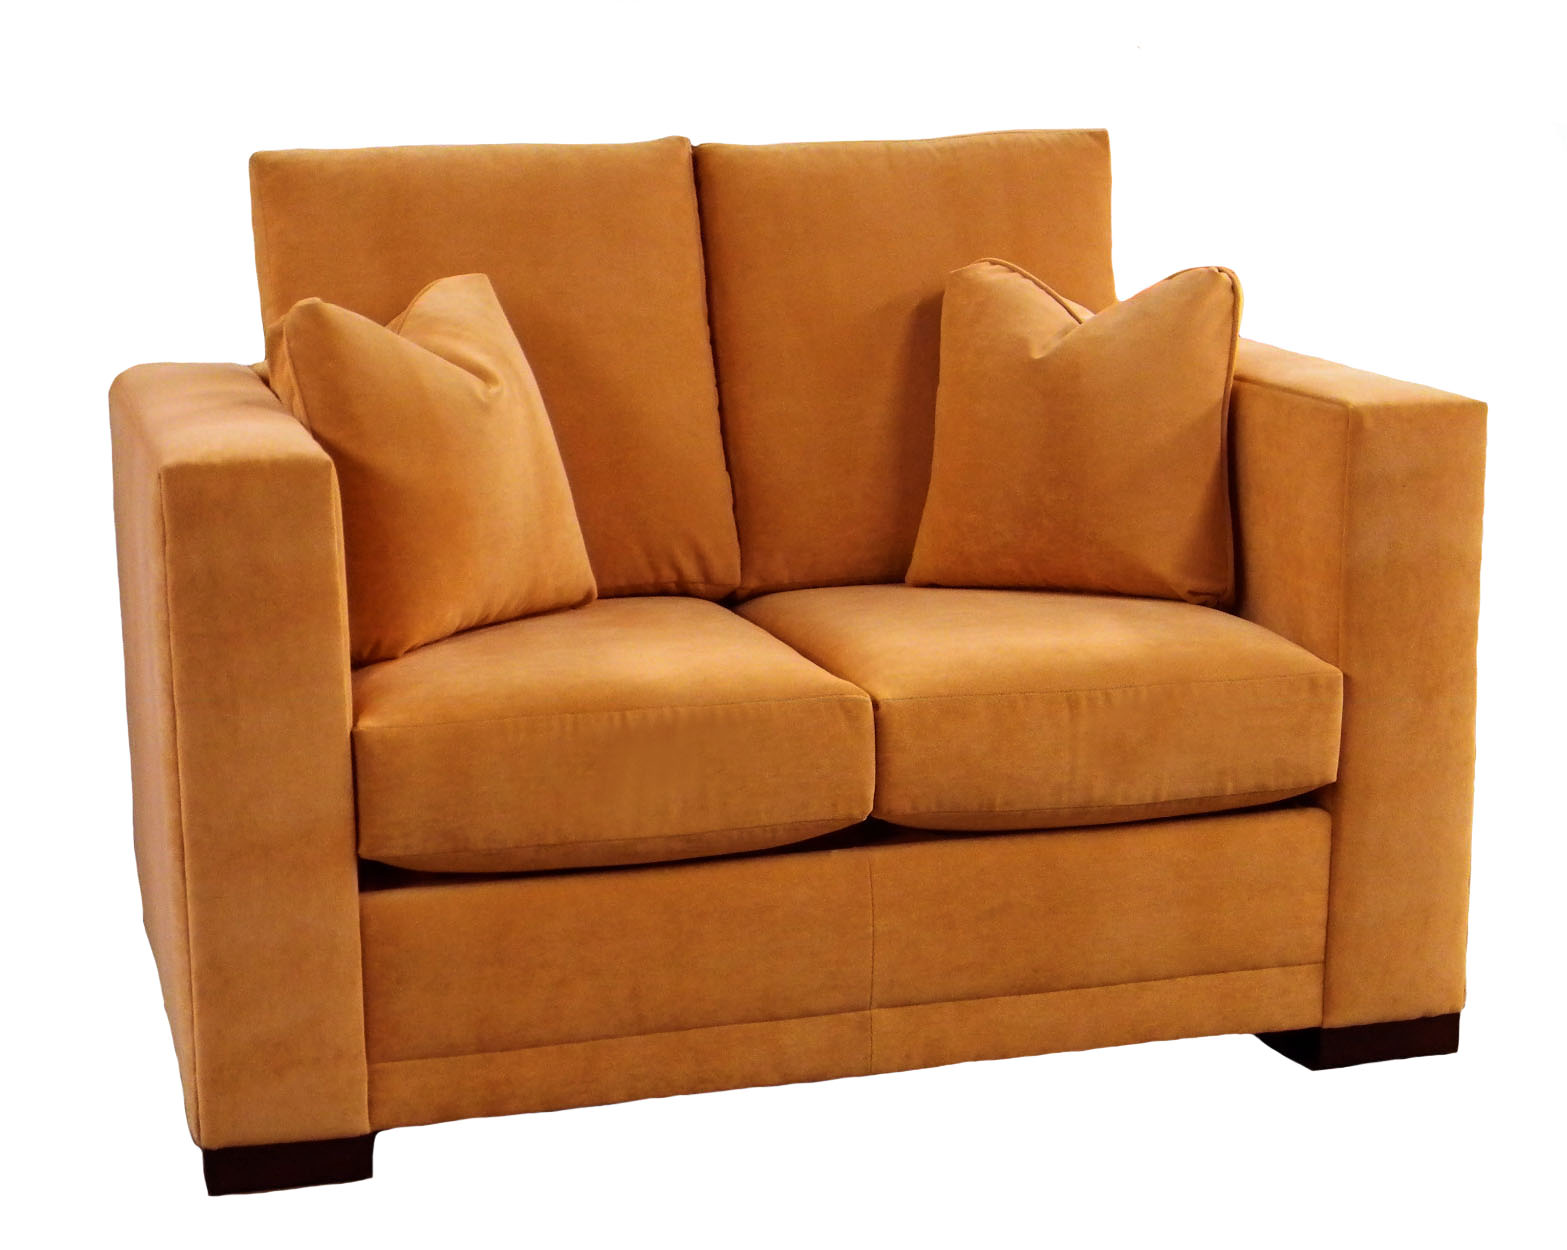 Marlowe Twin Sleeper Sofa